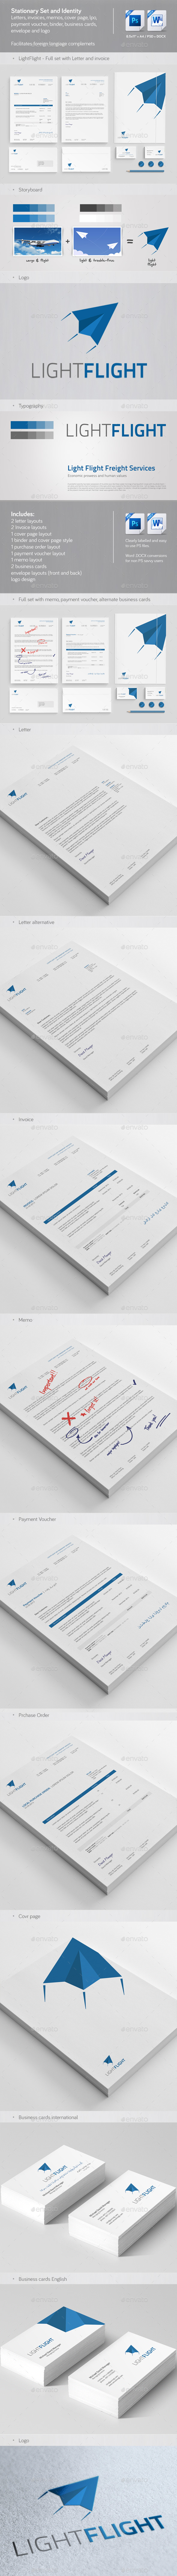 Clean & Modern Stationery, Invoice and Identity 2 - Stationery Print Templates